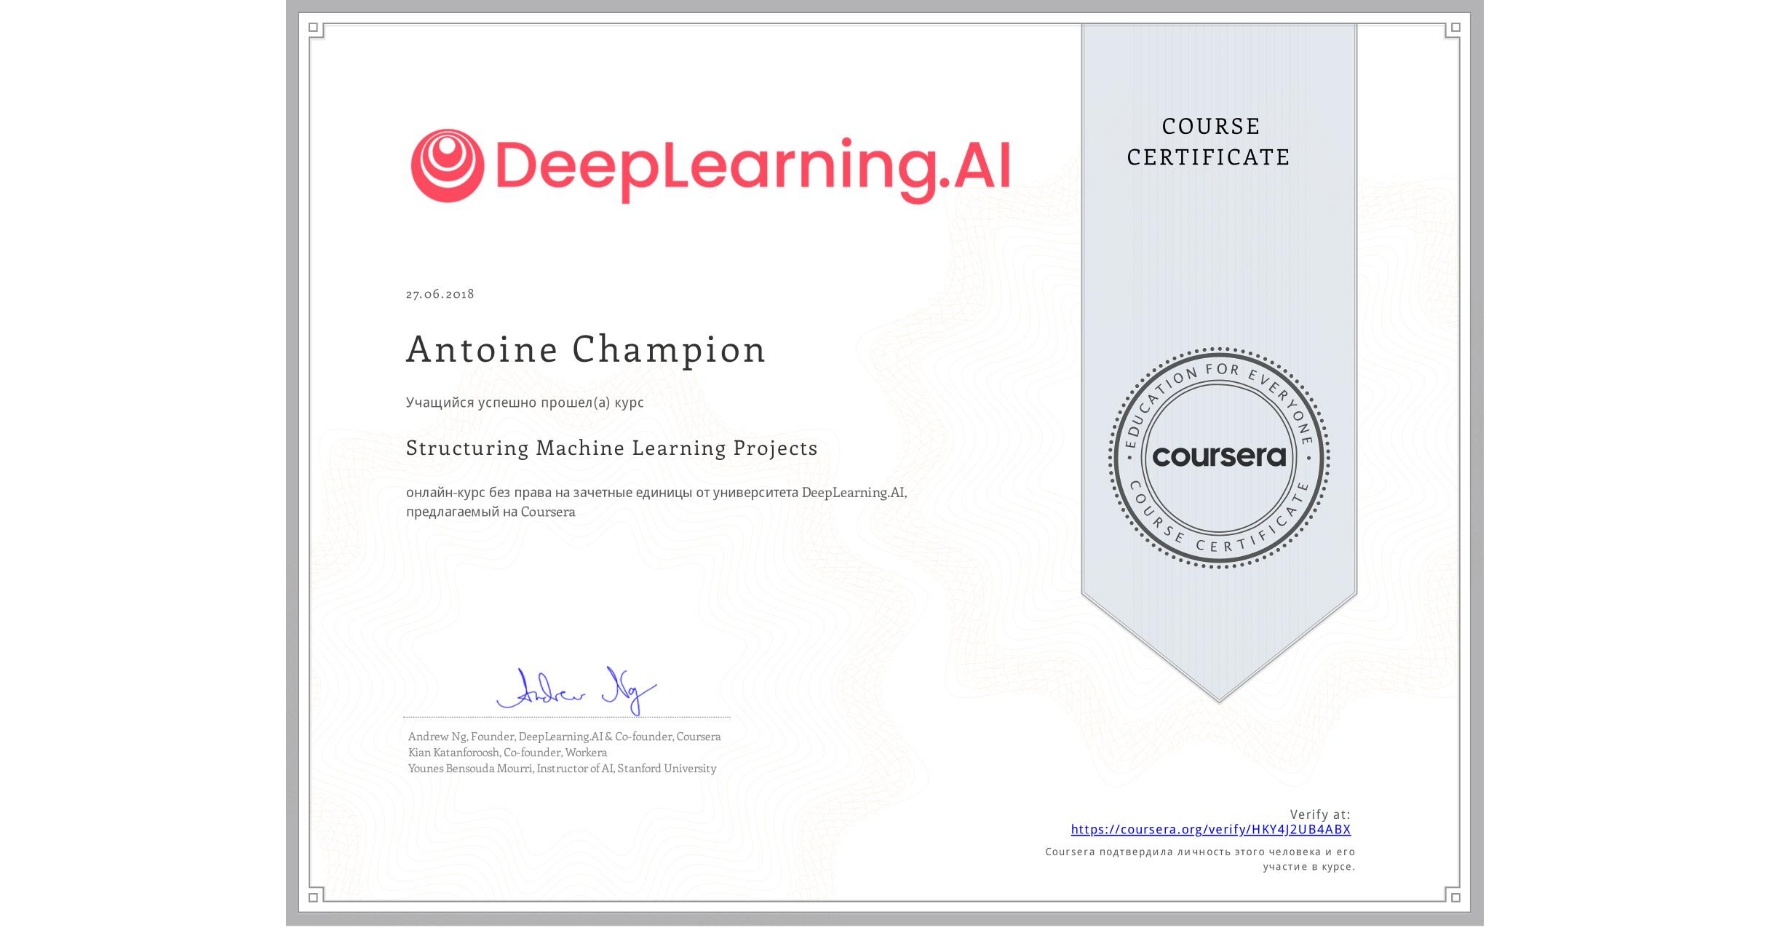 View certificate for Antoine Champion, Structuring Machine Learning Projects, an online non-credit course authorized by DeepLearning.AI and offered through Coursera